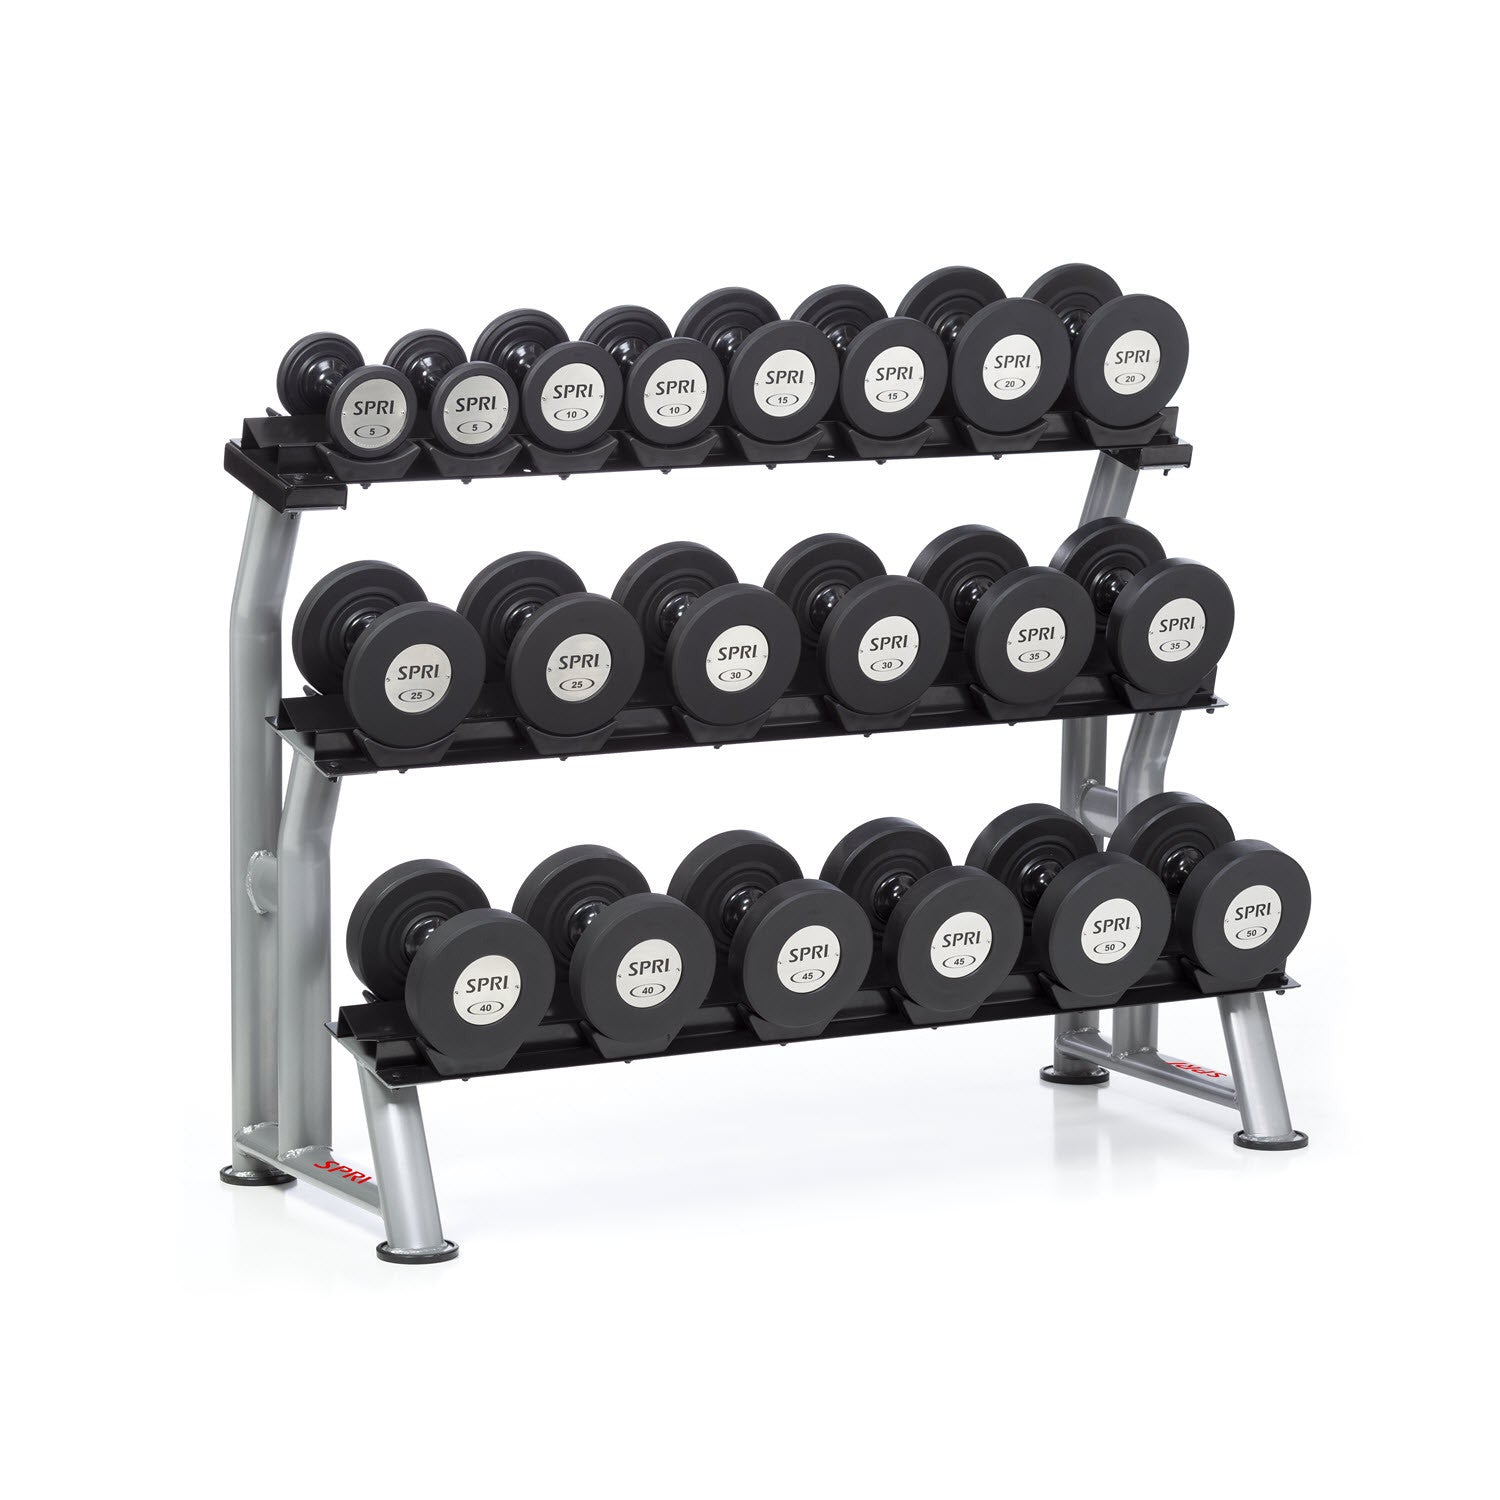 "This 3-tiered saddle-style dumbbell rack is designed to hold a variety of our different types of dumbbells. Saddle-style dumbbell racks have biomechanically designed tiers to make loading and off-loading of dumbbells safer and easier. Dumbbells not included. Assembly required. 3-Tier Deluxe Dumbbell Rack Features: Holds a variety of dumbbell types Saddle-style design is safe and easy use Heavy-duty steel construction Please contact customer service to order: (800) 222-7774 or Customerservice. SPRI@gaiam.com. The 3-Tier Deluxe Dumbbell Rack is exempt from all promotions. Measurements: 68""W x 25""D x 44""H Materials: Heavy-duty 12- and 14-gauge steel construction"